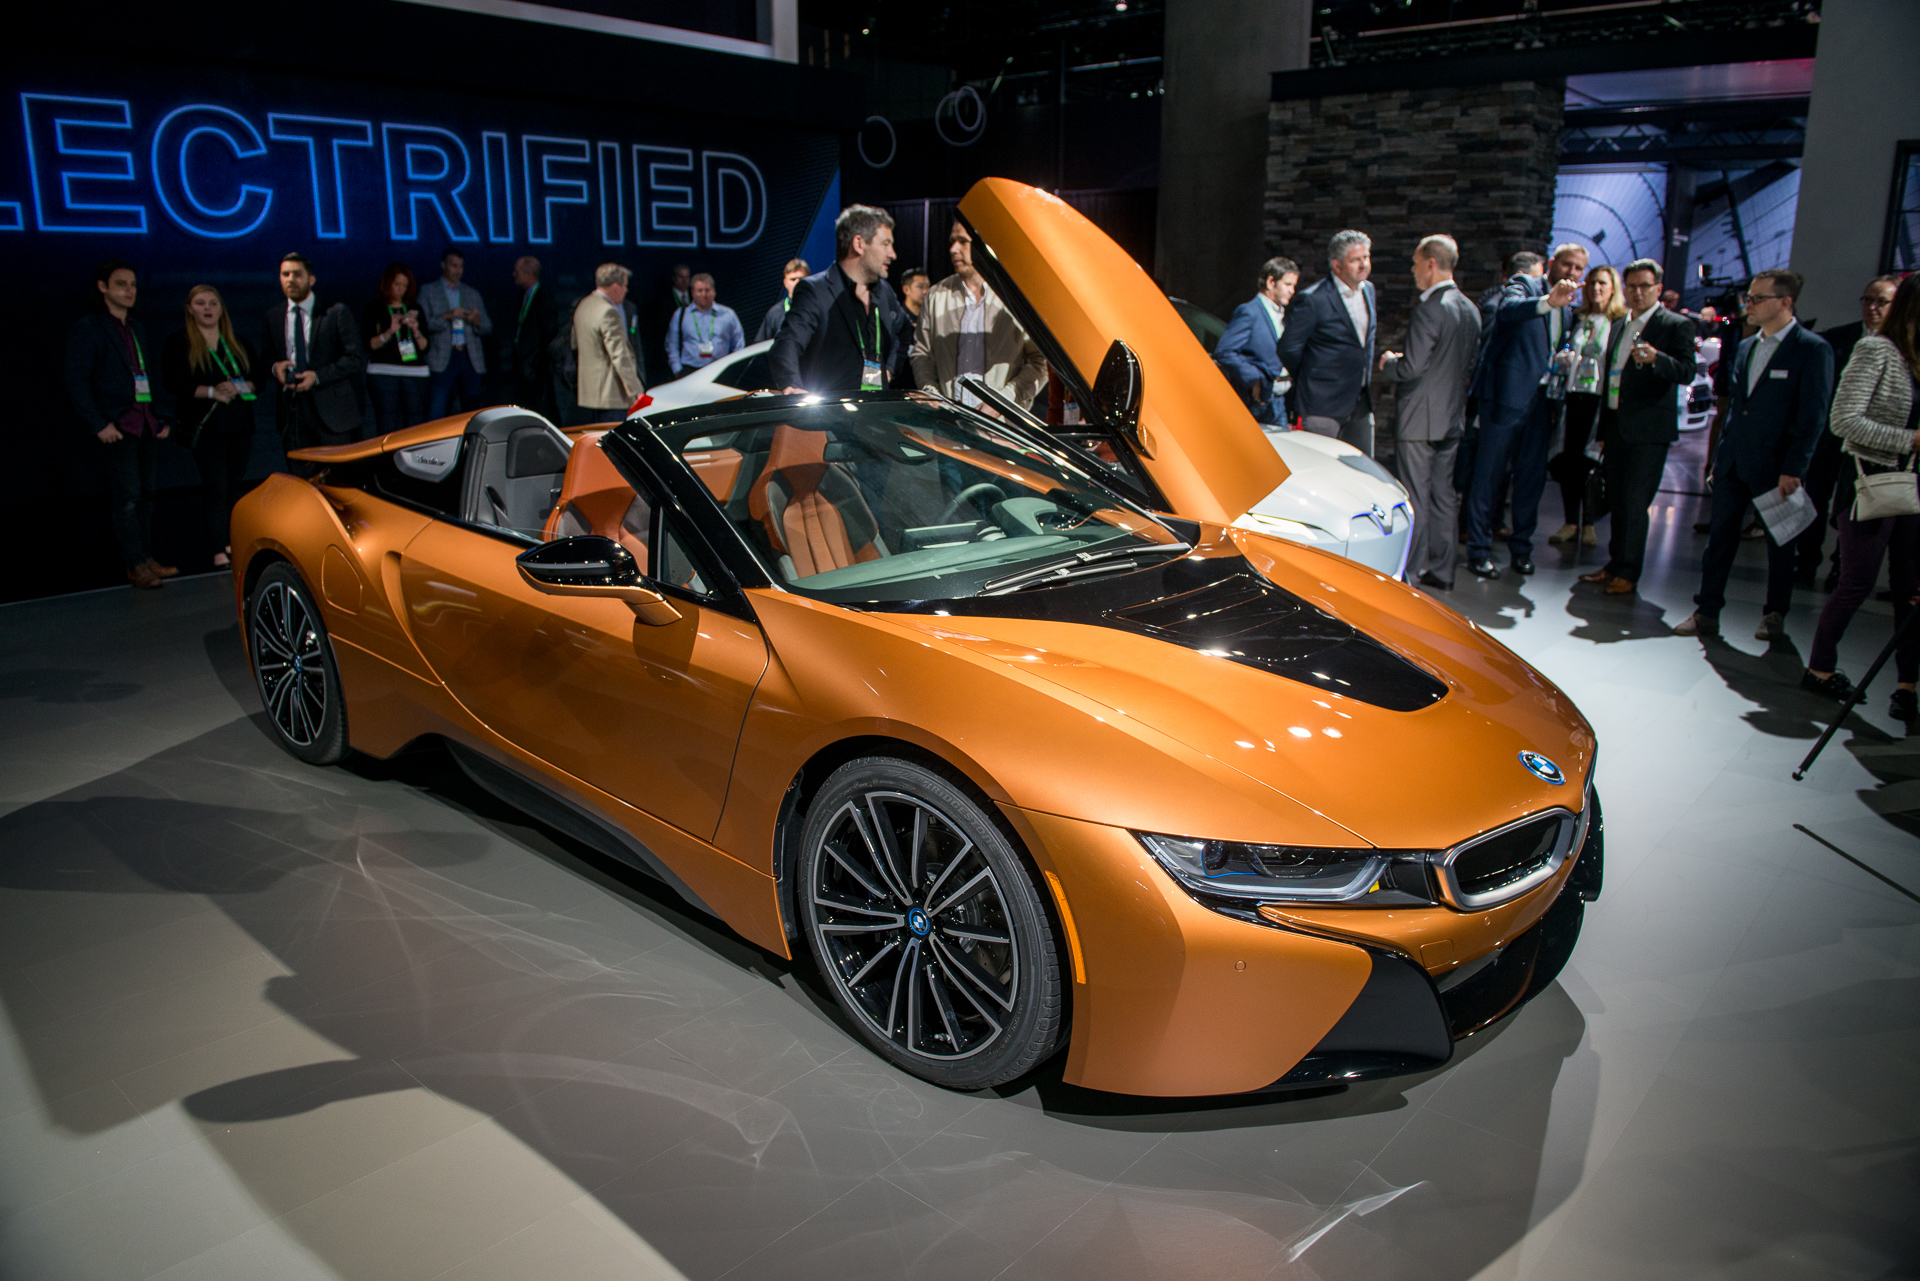 2019 Bmw I8 Larger Battery More Range Plus New Roadster Priced From 164 295